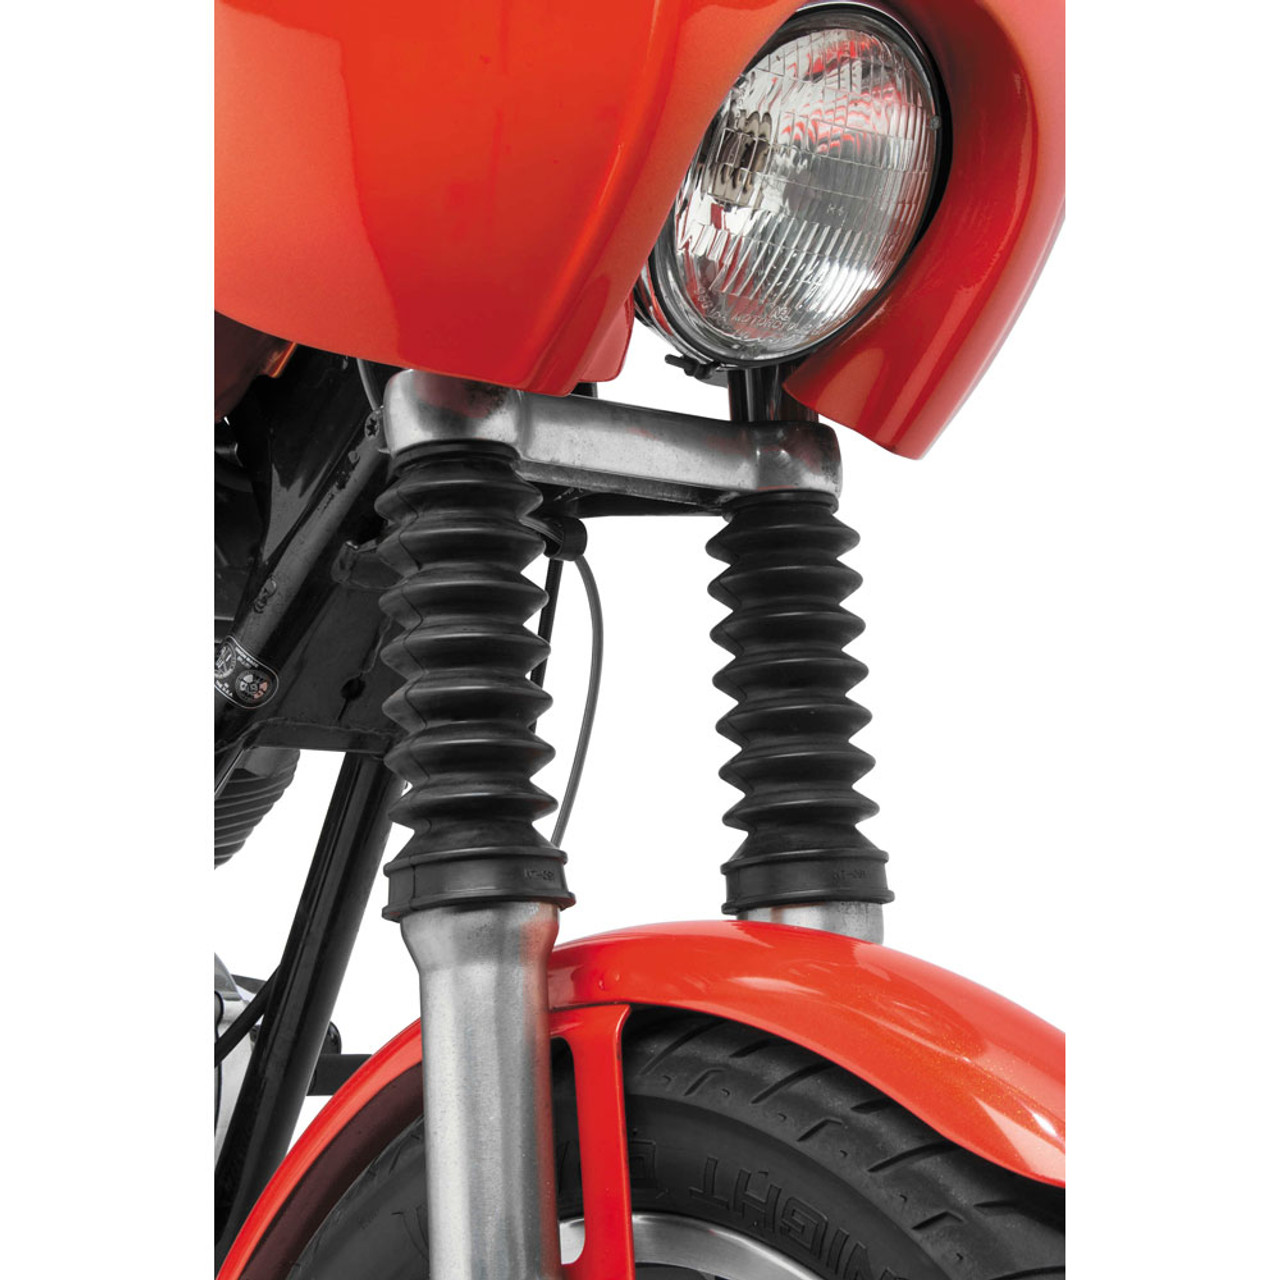 Biker's Choice 39mm Fork Boots for Harley